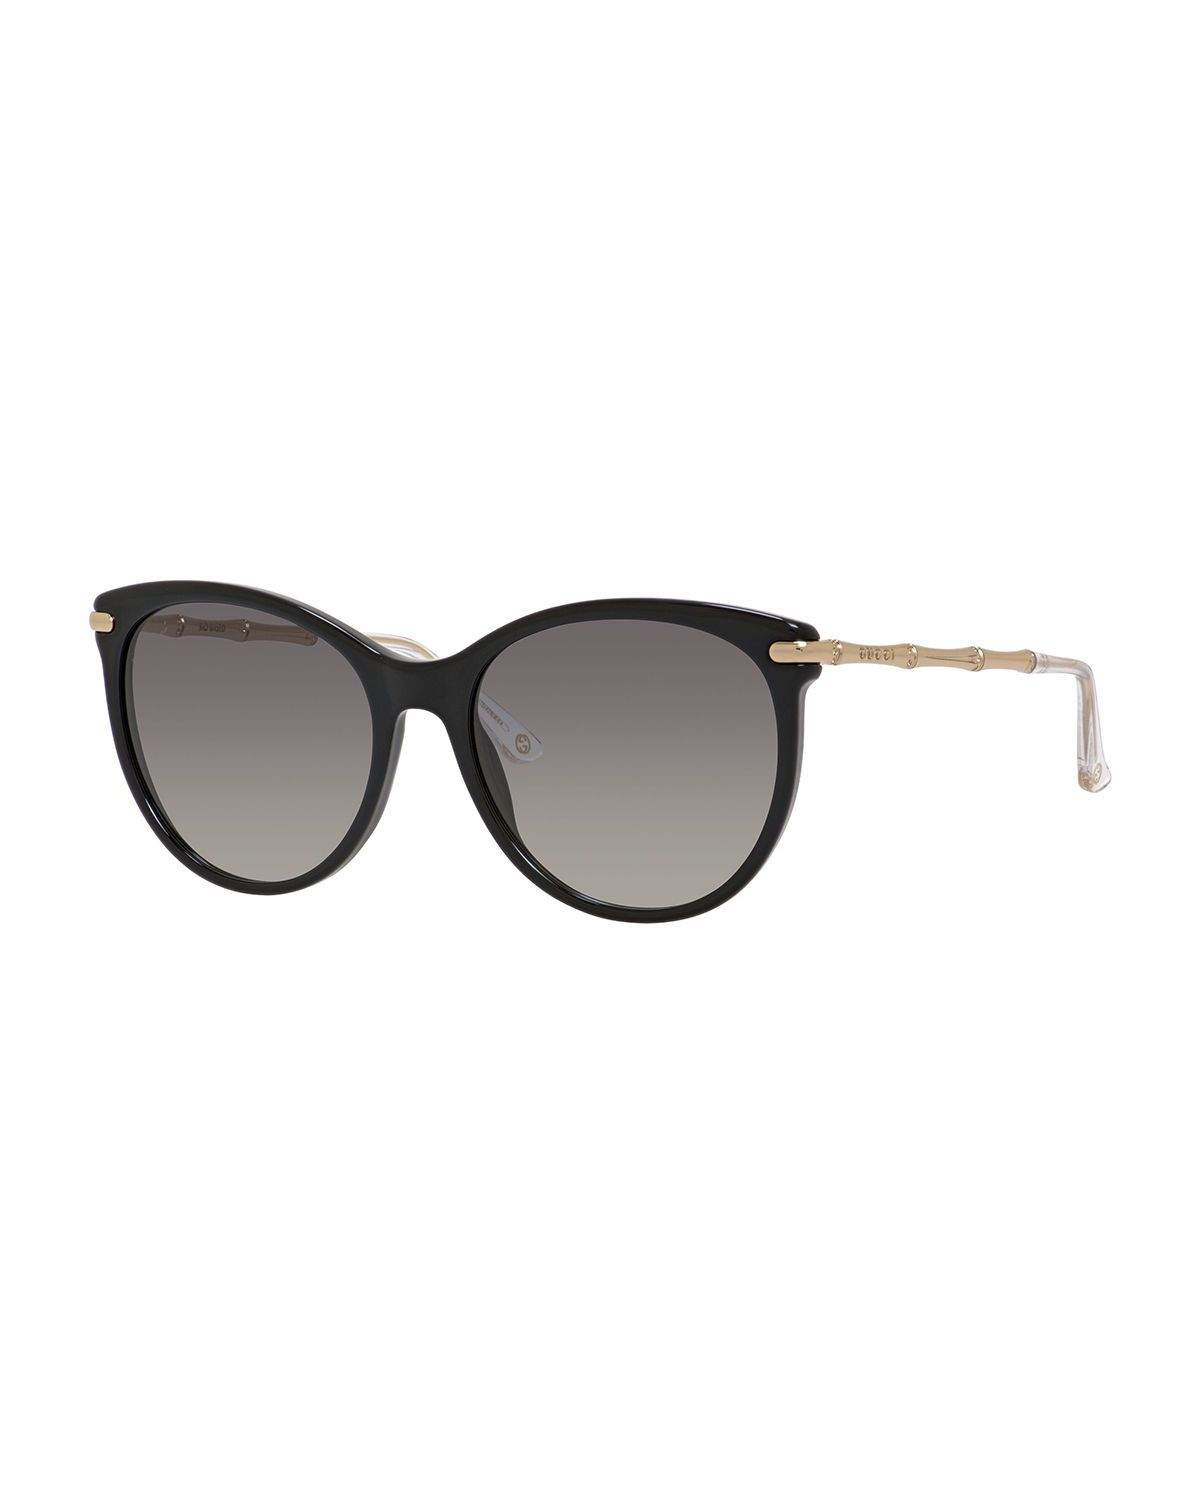 420419bc93d Gucci cat-eye sunglasses. Acetate and metal frames. Round lenses. Etched  arms. 100% UVA UVB protection. Imported.